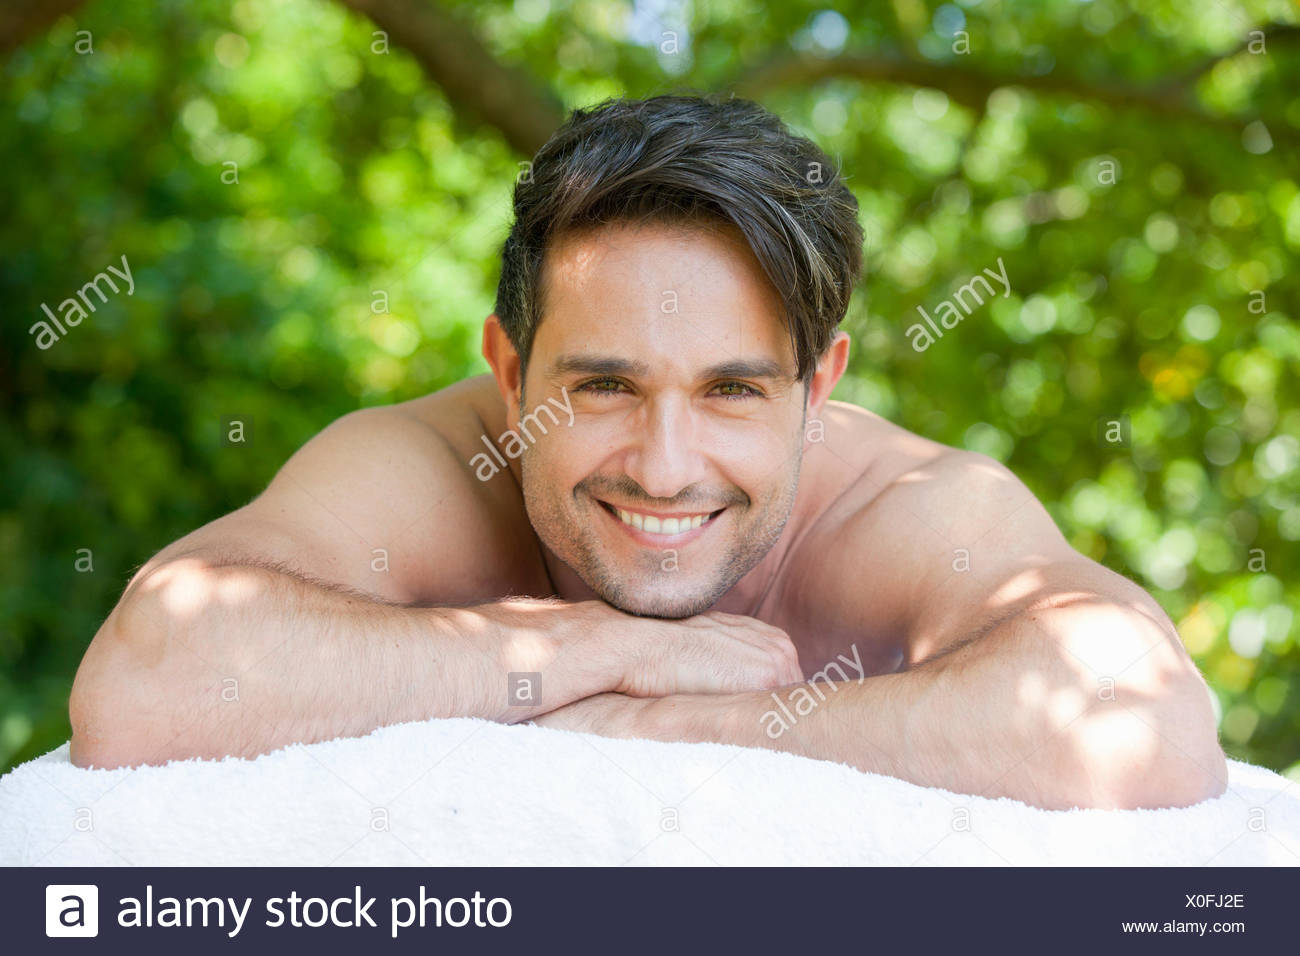 Portrait happy brunette man laying on massage table under tree - Stock Image